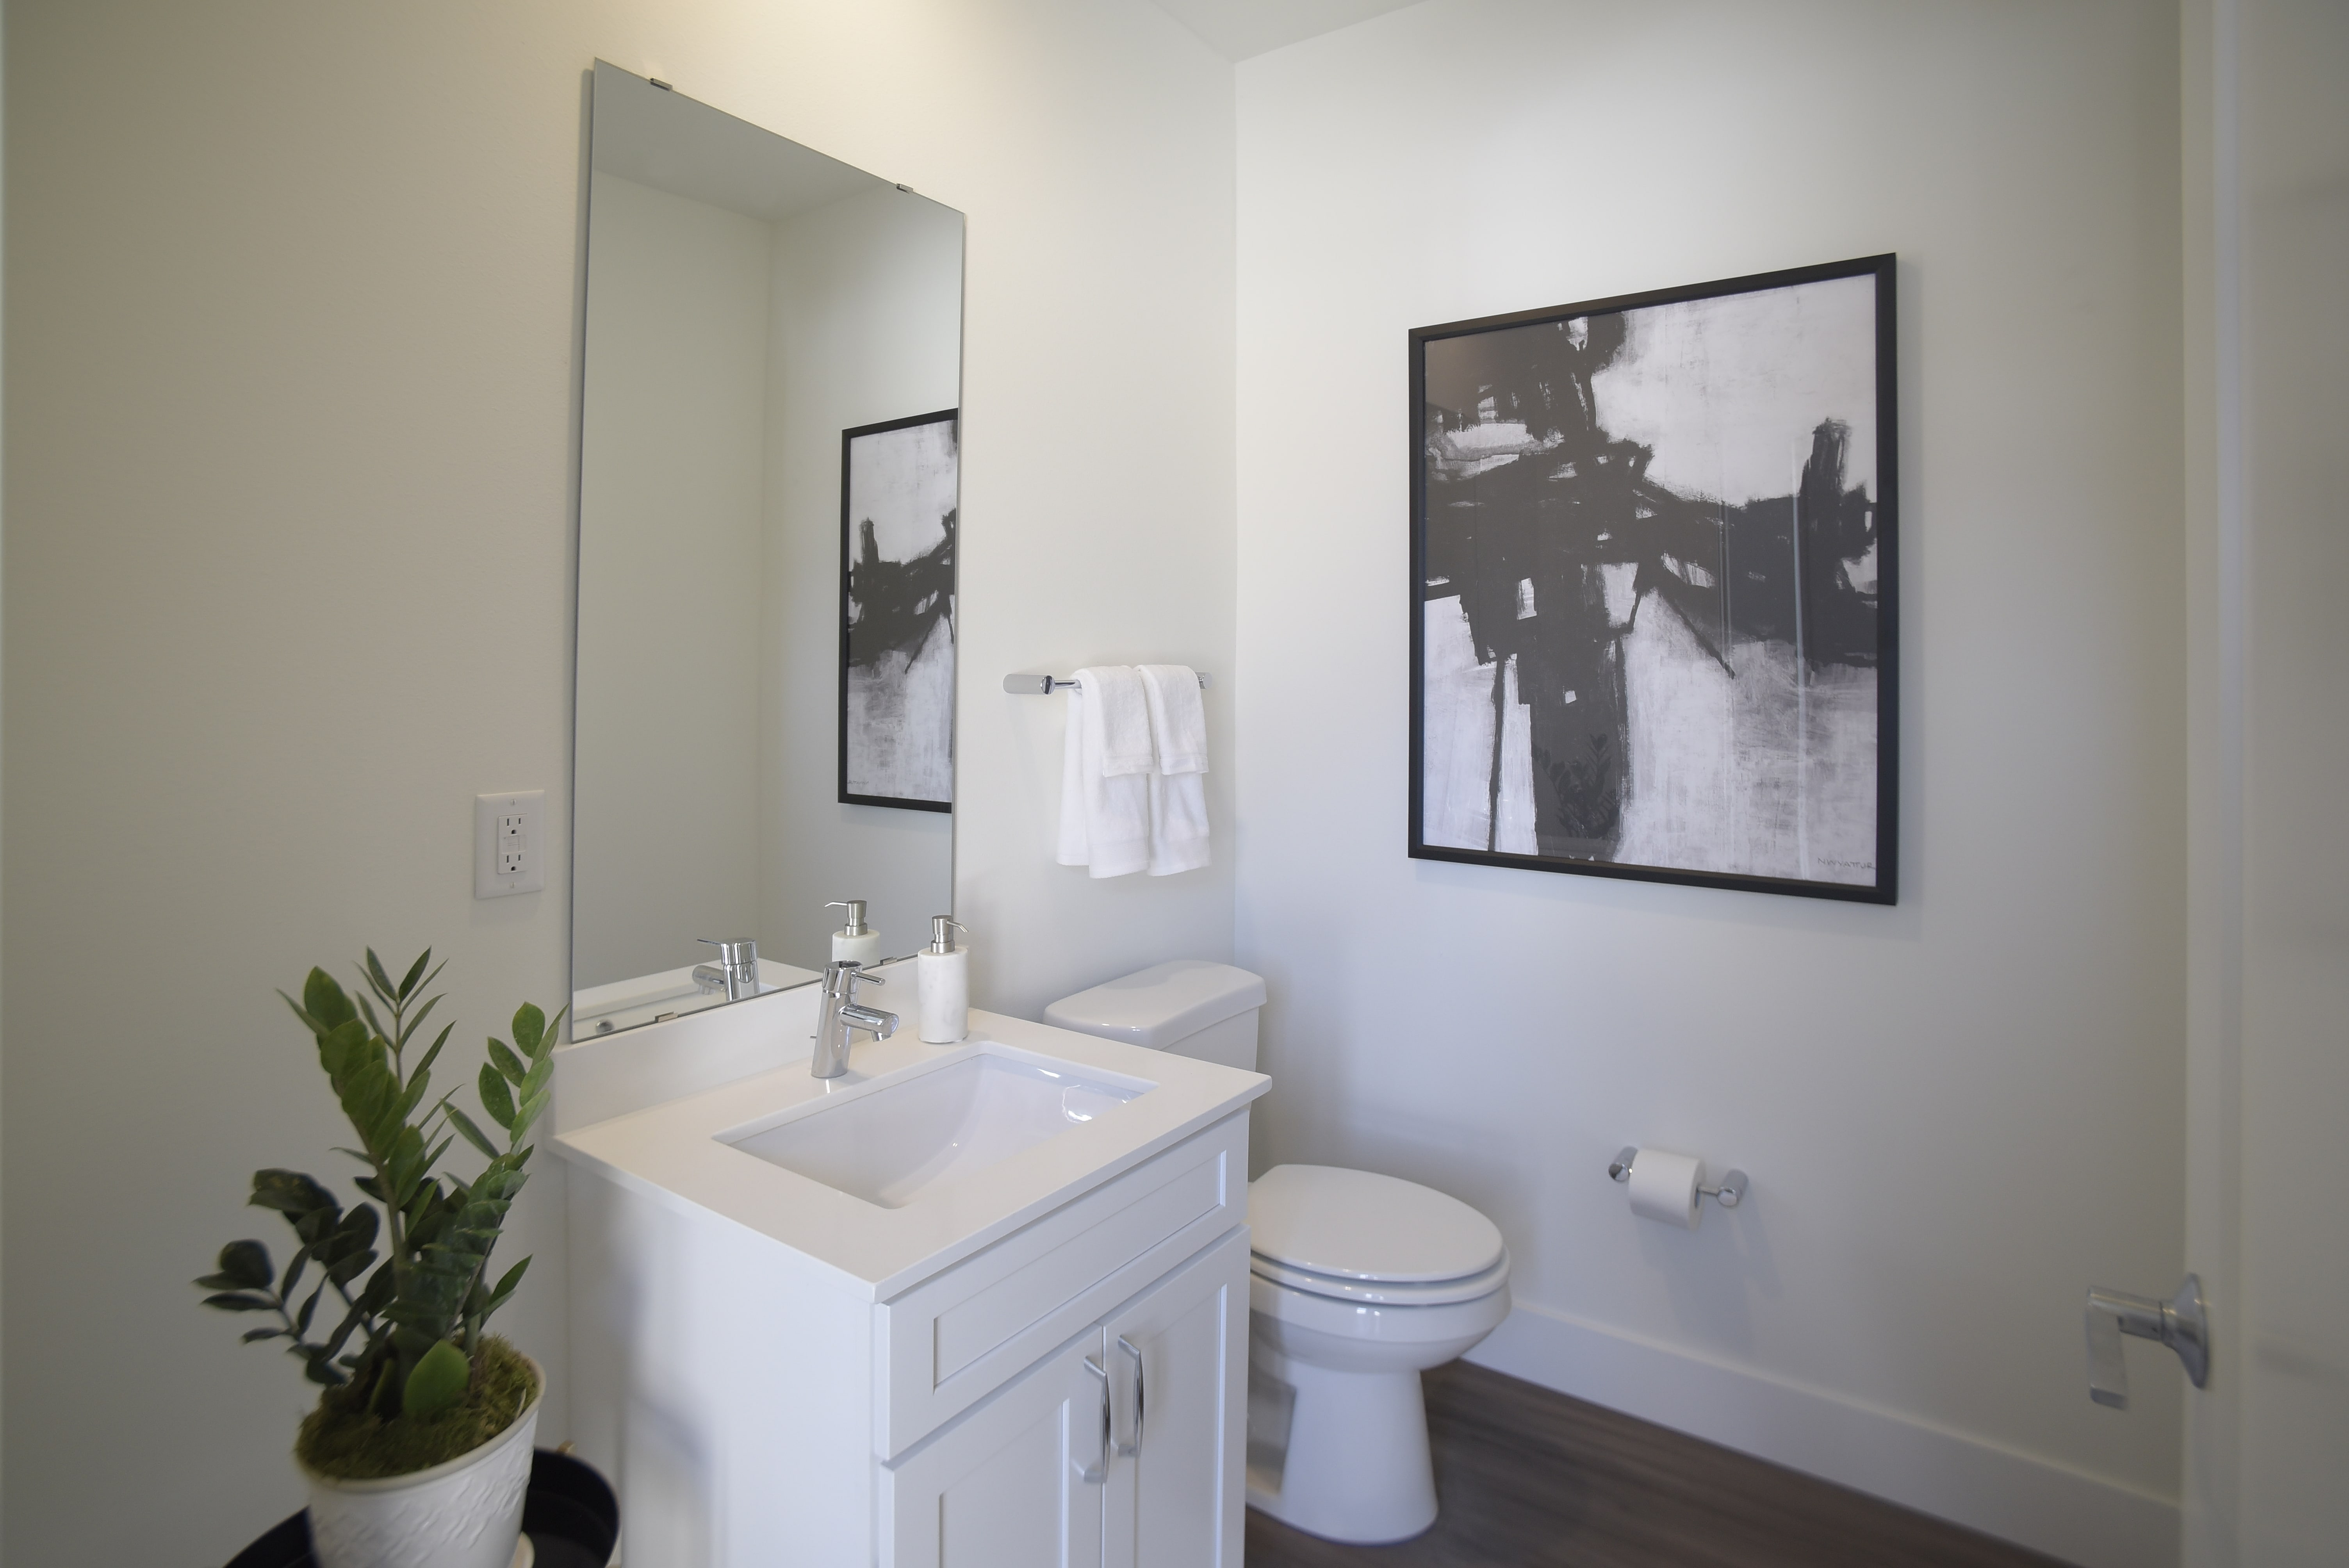 Spur 16 Apartments provide beautiful wood flooring in the bathroom.